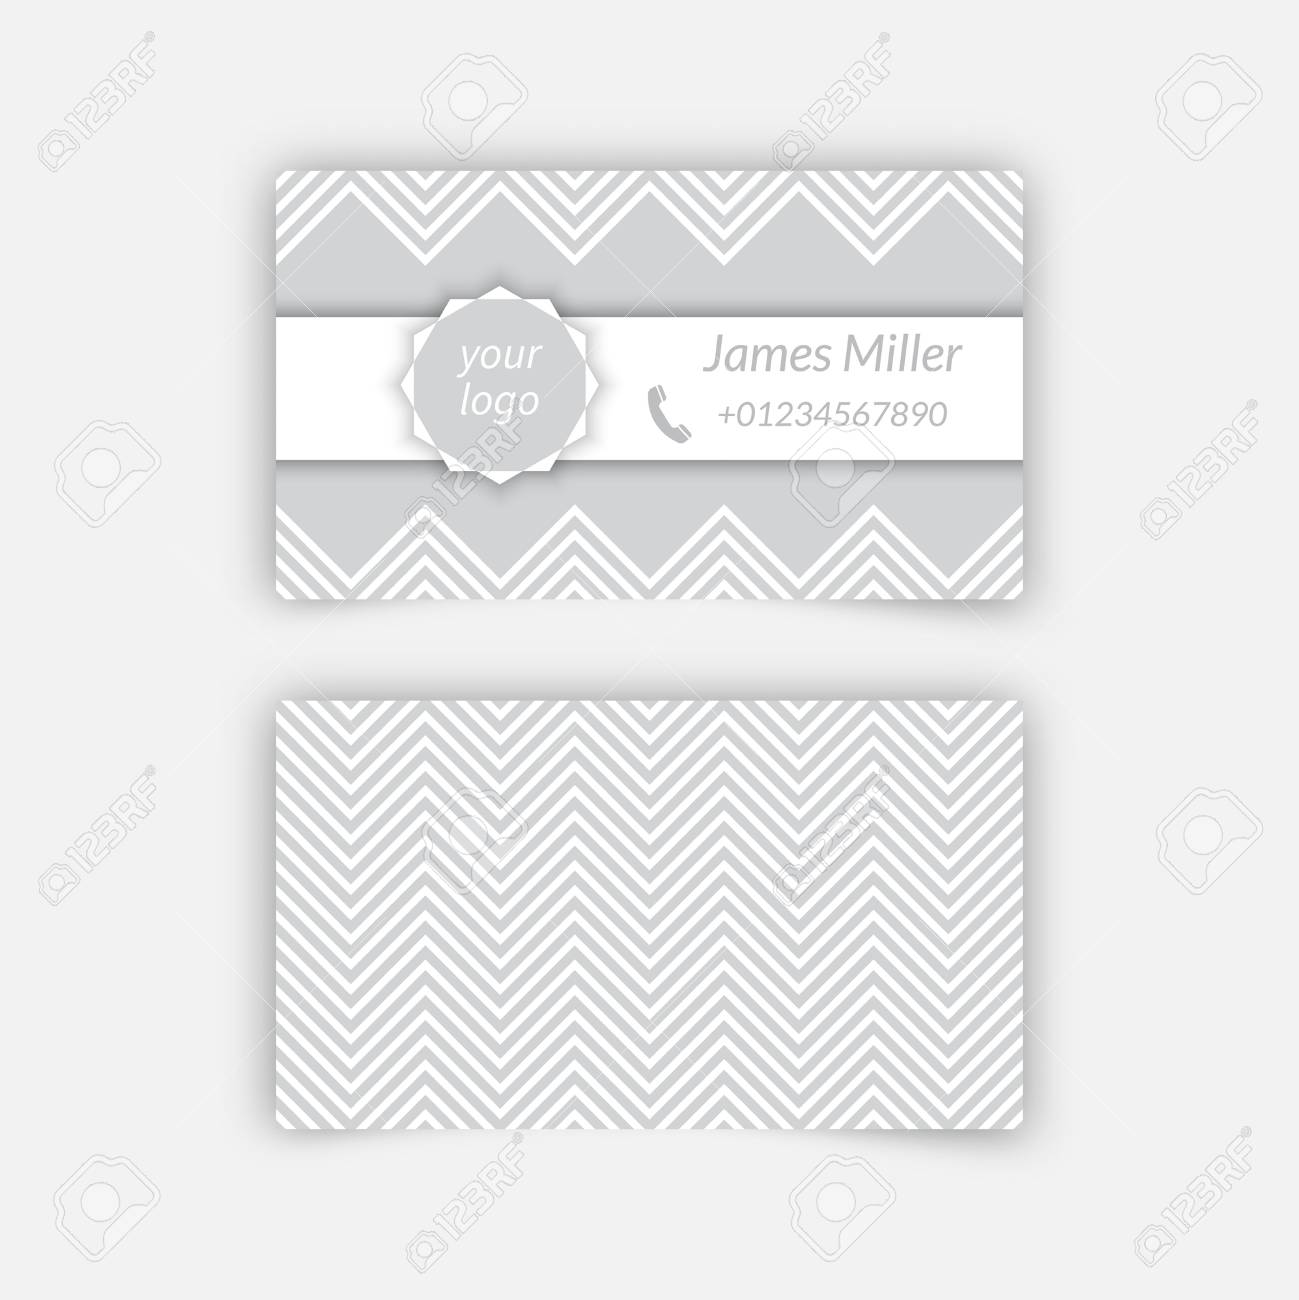 Business card blank template with textured background from zigzag business card blank template with textured background from zigzag strips minimal elegant vector design stock accmission Choice Image